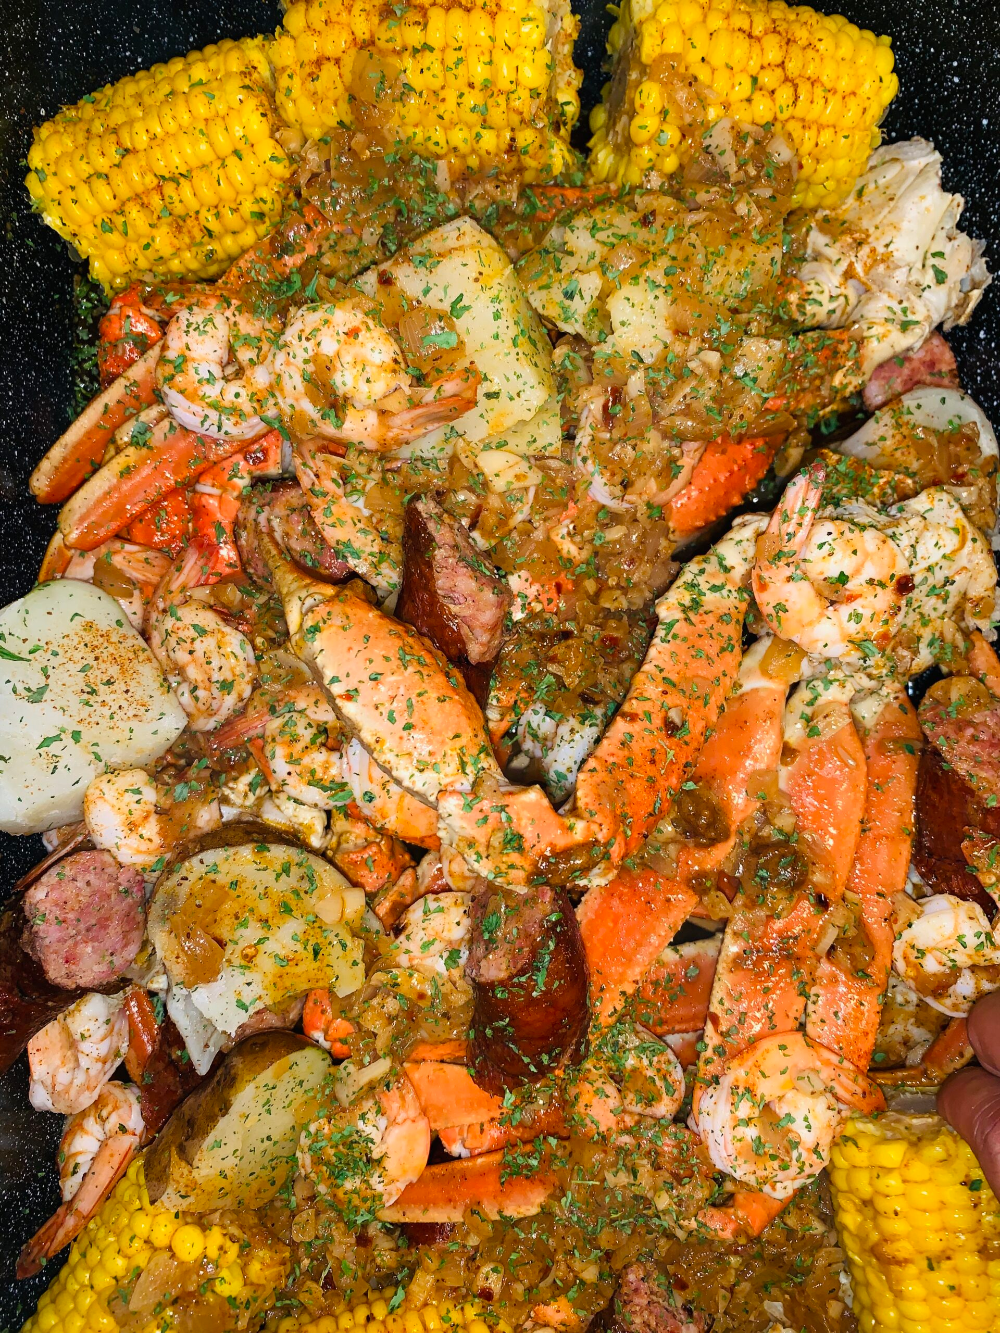 GARLIC BUTTER SEAFOOD BOIL - Razzle Dazzle Life #boiledshrimp Garlic butter seaf...        GARLIC BUTTER SEAFOOD BOIL - Razzle Dazzle Life #boiledshrimp Garlic butter seafood boil sauce. Add this spicy sauce to your favorite seafood boil, and use some on the side to dip the yumminess in! #Boil #boiledshrimp #Butter #Dazzle #Garlic #Life #Razzle #seaf #seafood #Shrimp recipes